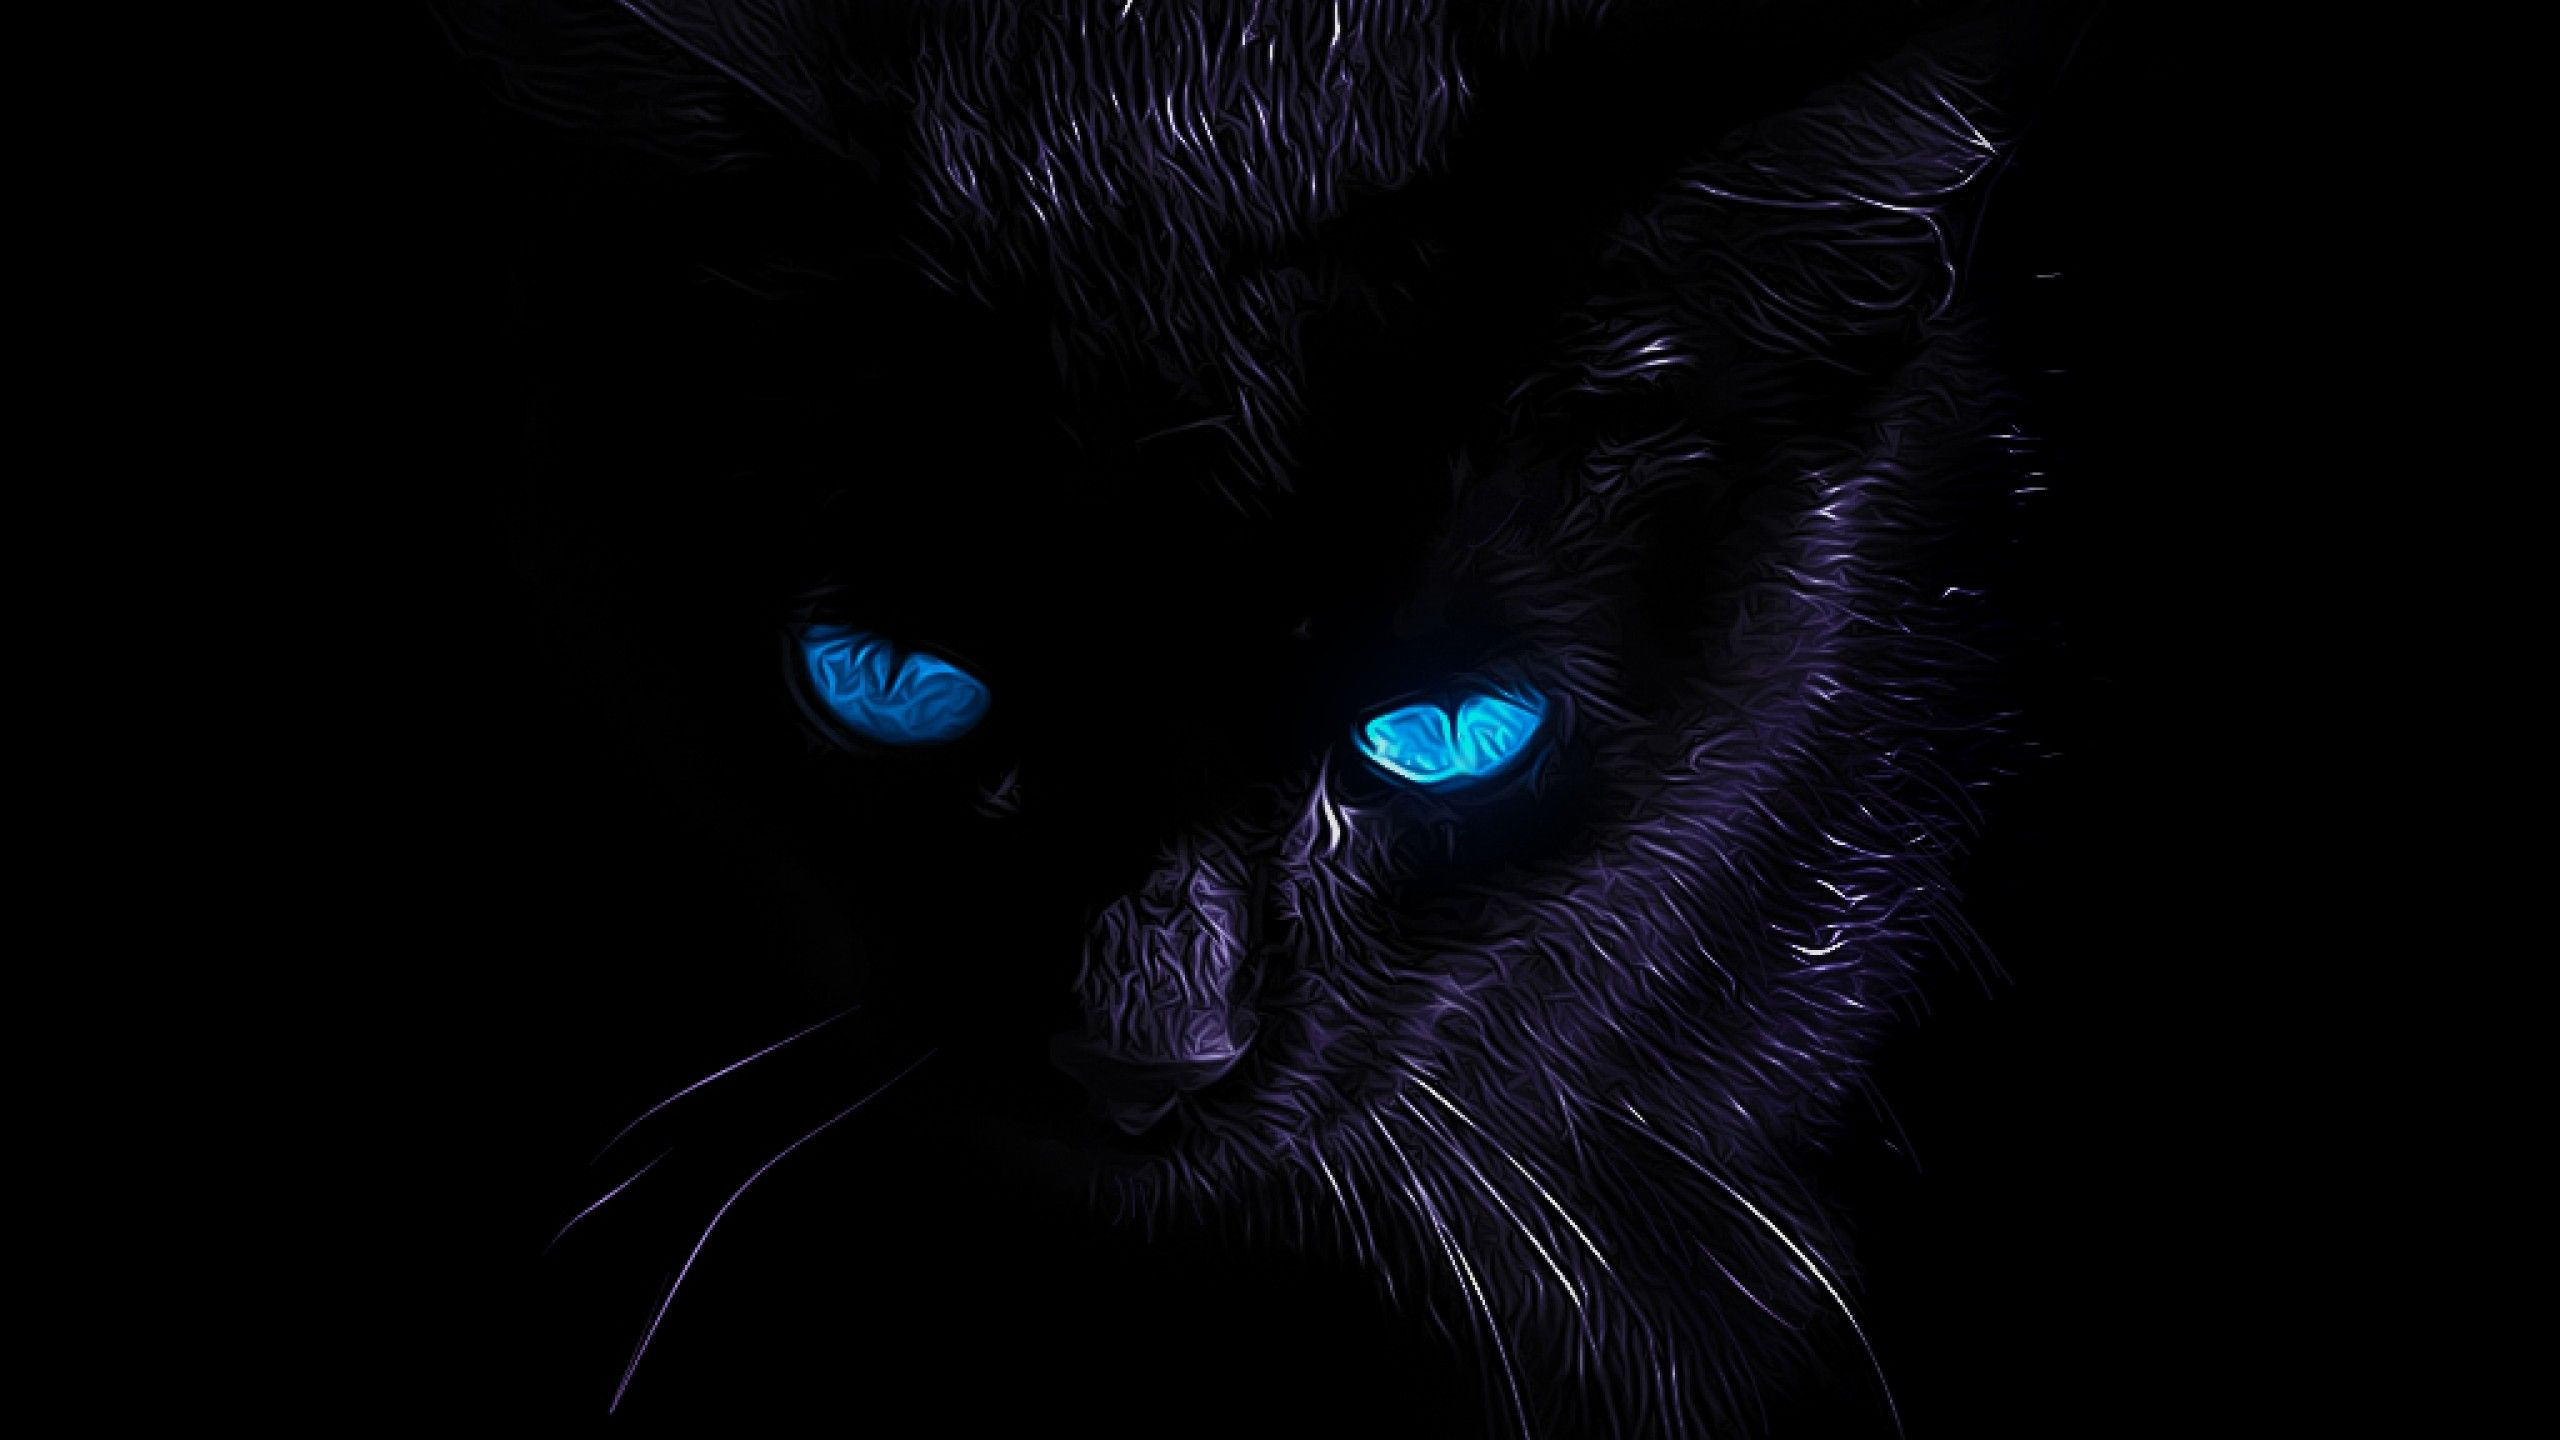 Black Cat Wallpaper HD Blue Eyes Awesome Wallpaper